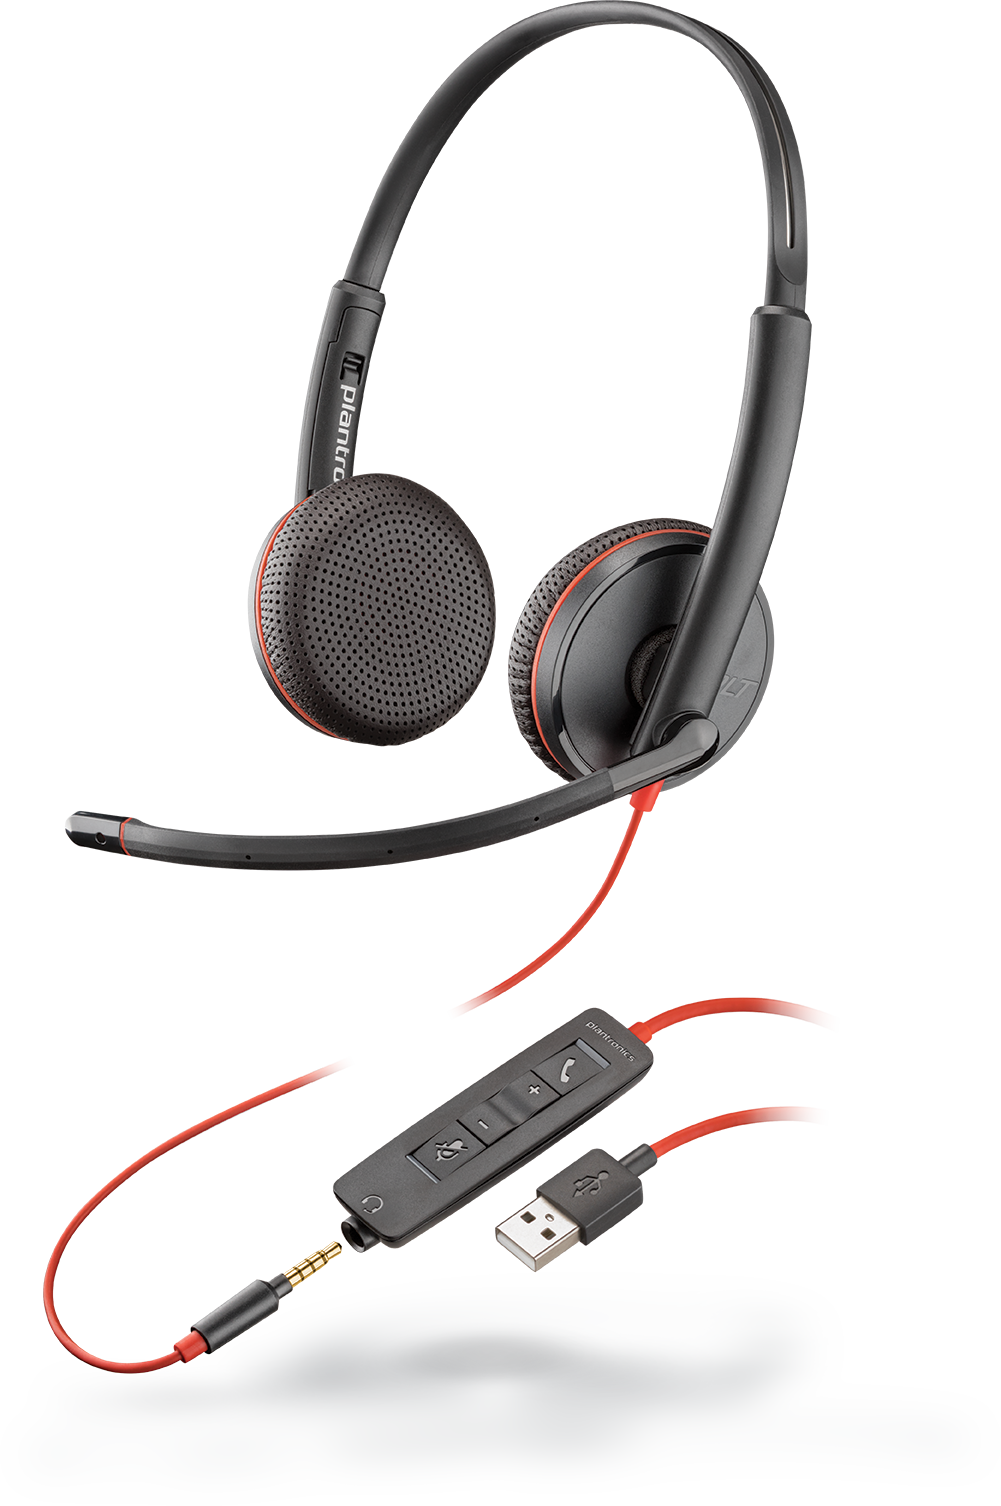 Plantronics BlackWire 3220/3225 Image